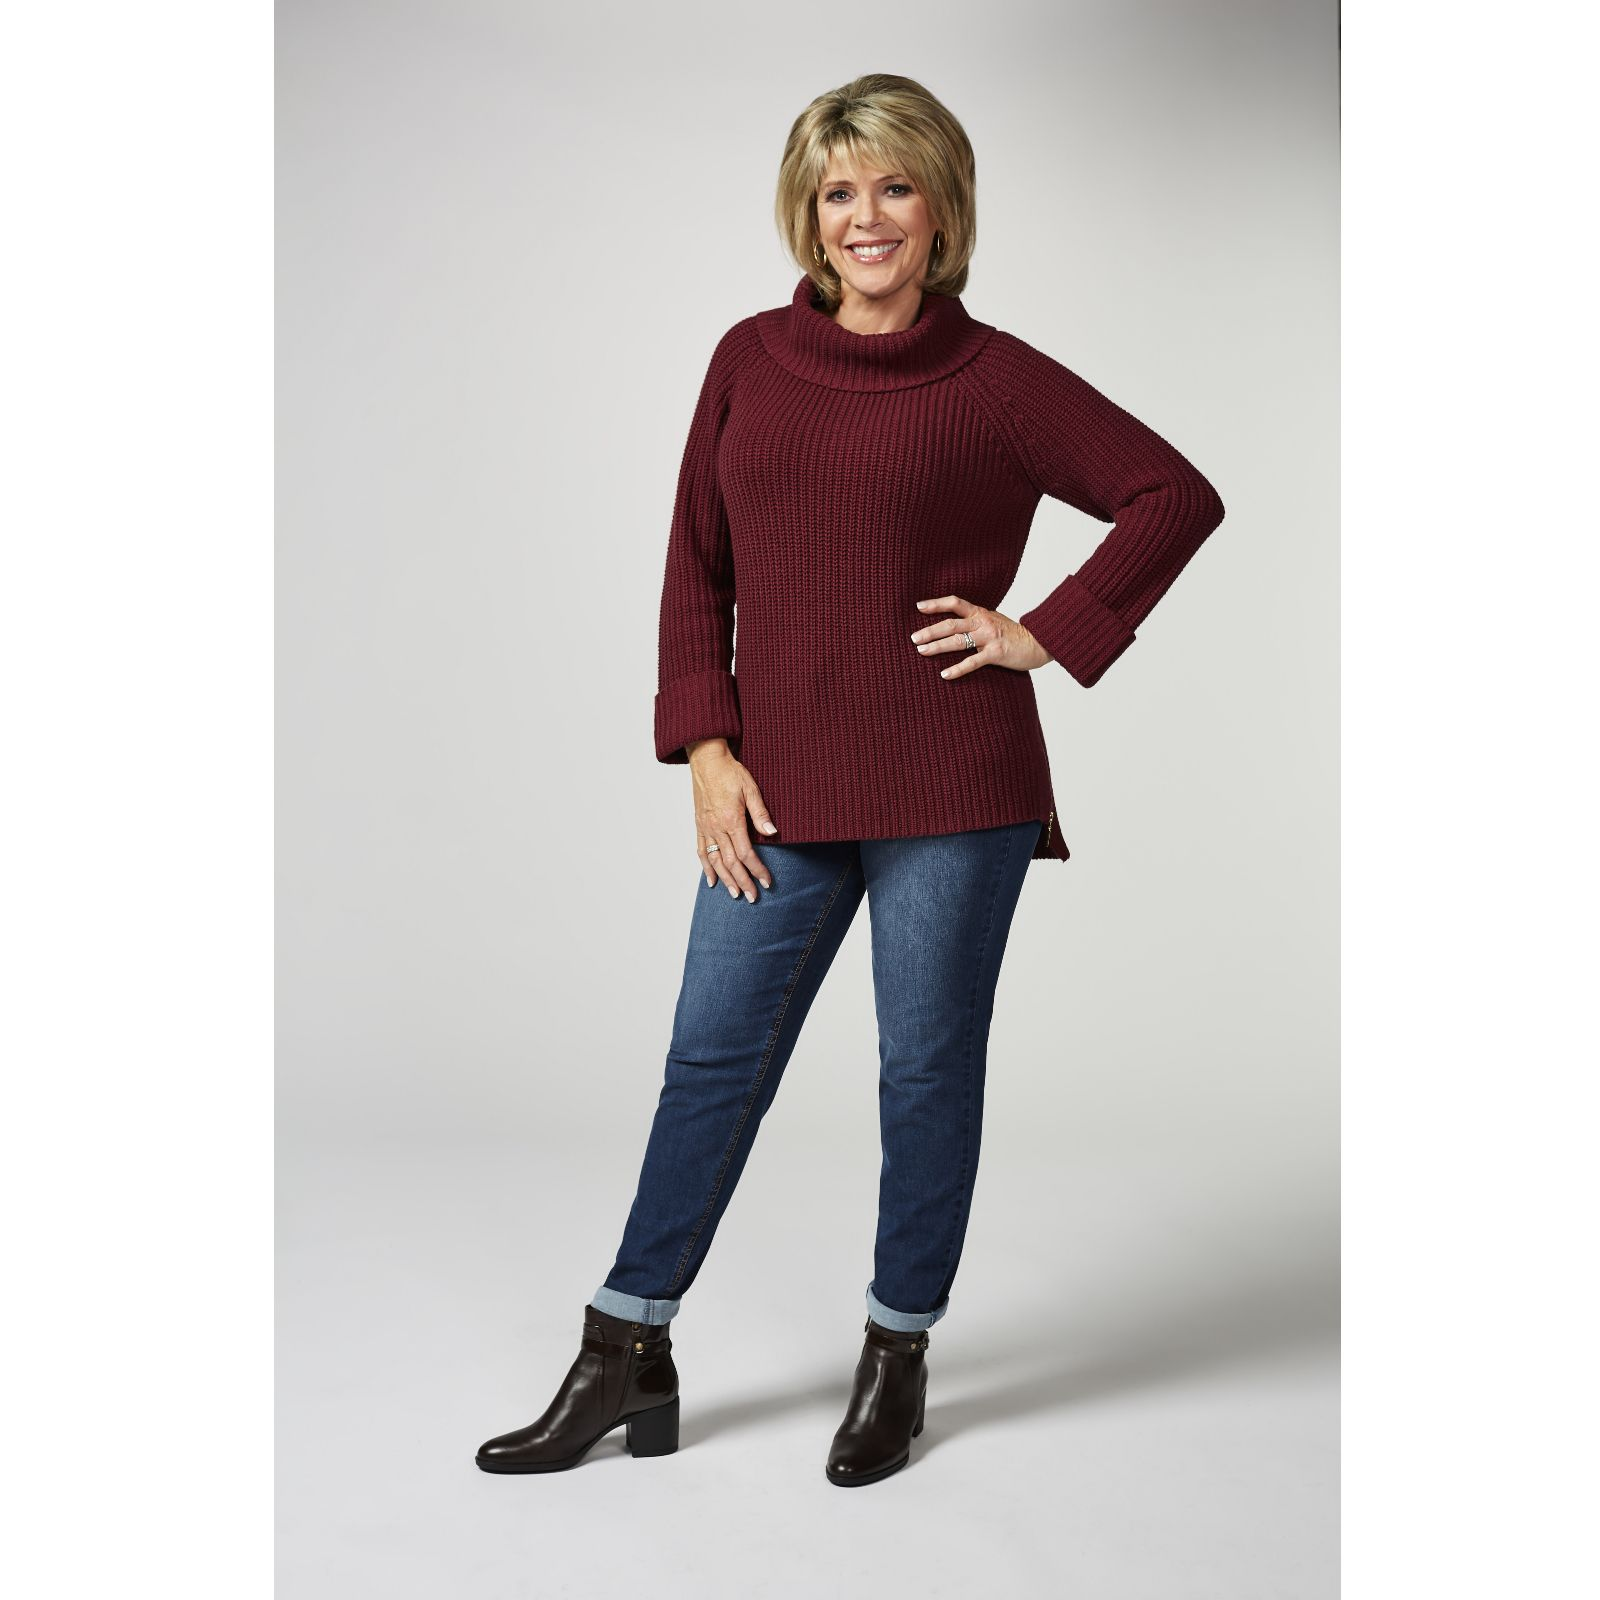 8d4e3506a6 Ruth Langsford Chunky Knit Roll Neck Sweater with Side Zip Detail - QVC UK